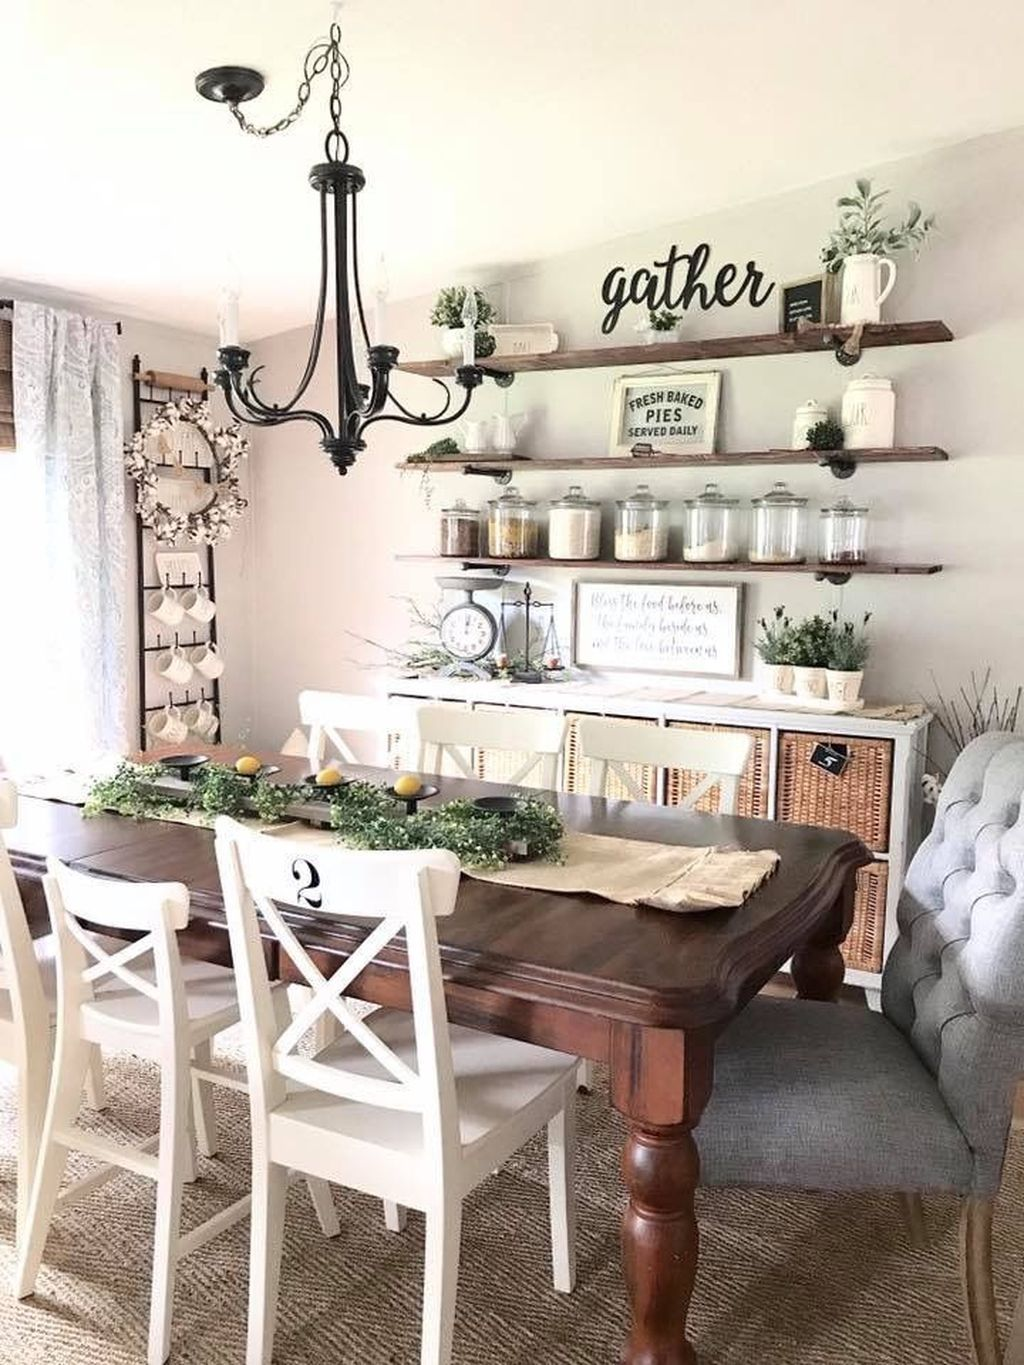 20 Fantastic Dining Room Decor Ideas With Farmhouse Style Trendhmdcr Dining Room Decor Country Farmhouse Dining Rooms Decor Dining Room Wall Decor